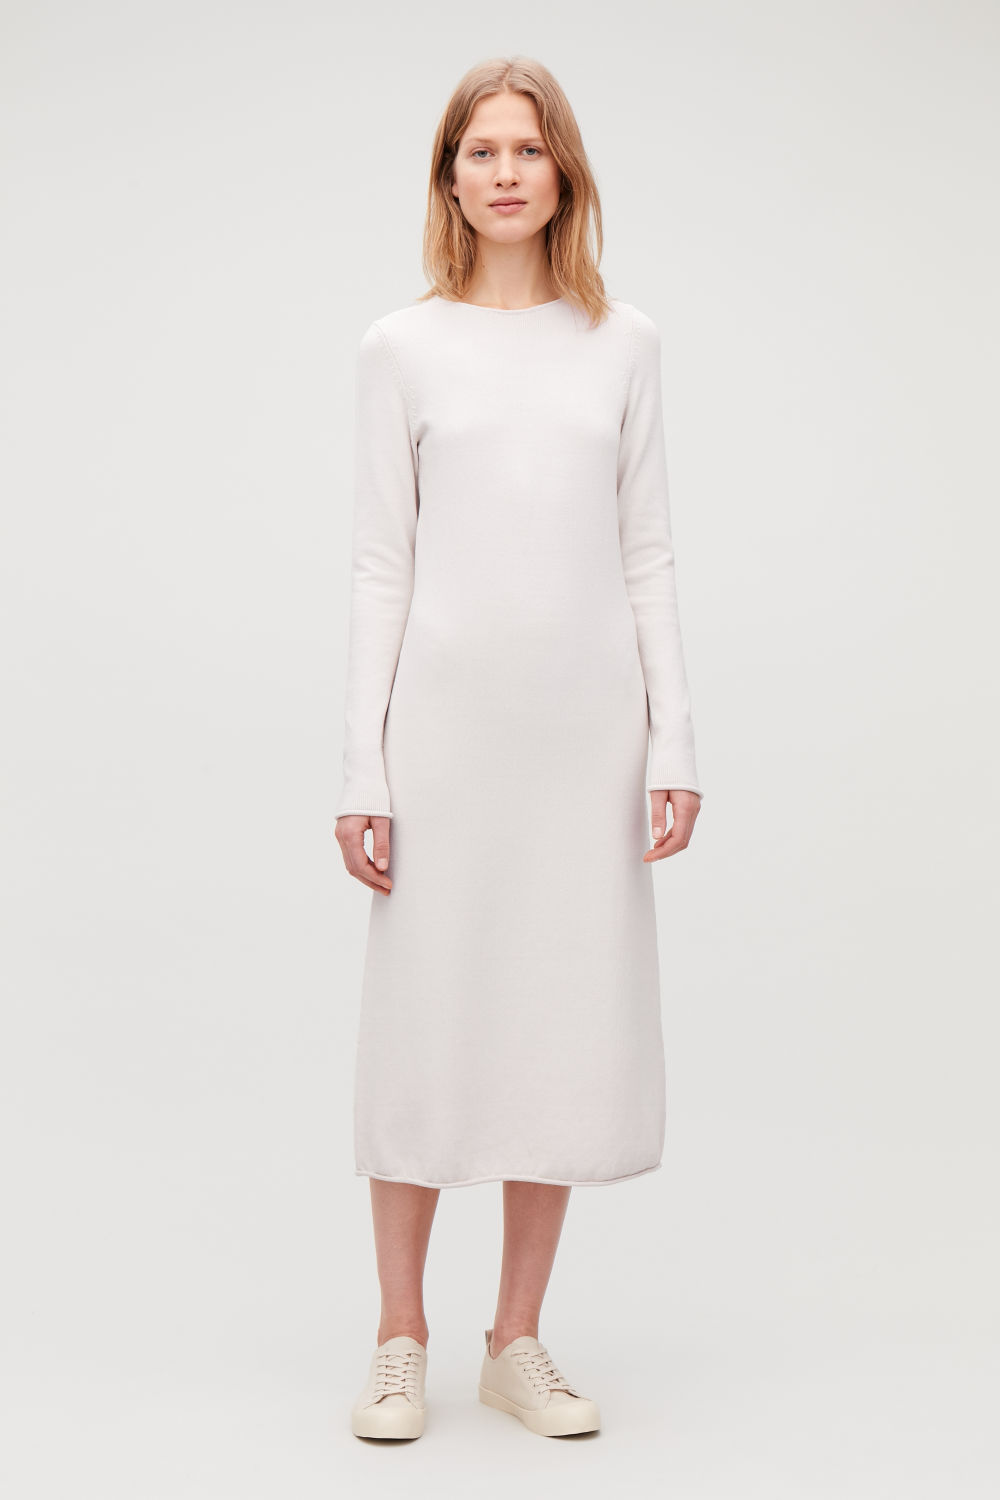 LONG MID-WEIGHT KNIT DRESS